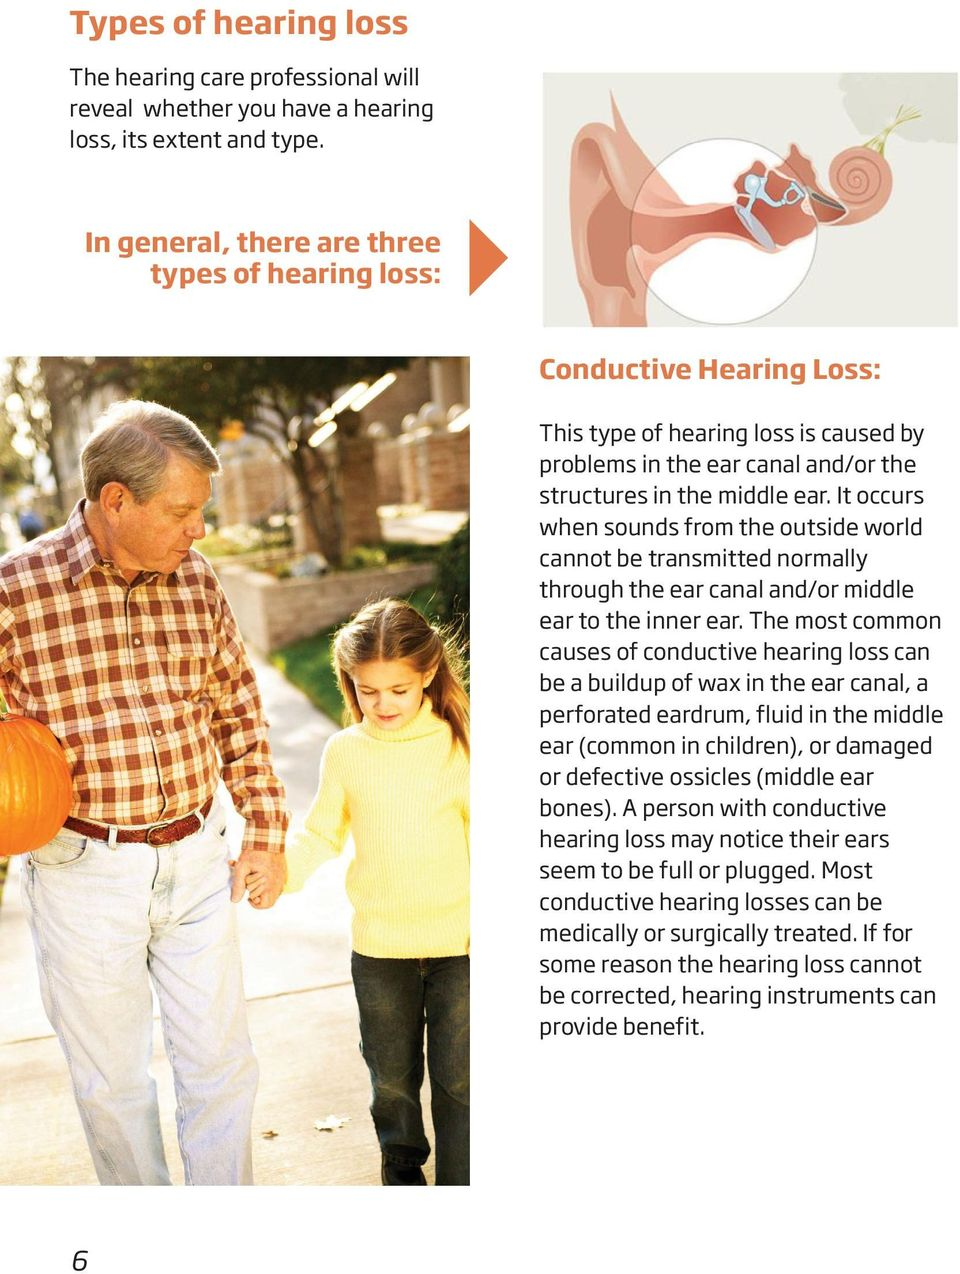 It occurs when sounds from the outside world cannot be transmitted normally through the ear canal and/or middle ear to the inner ear.